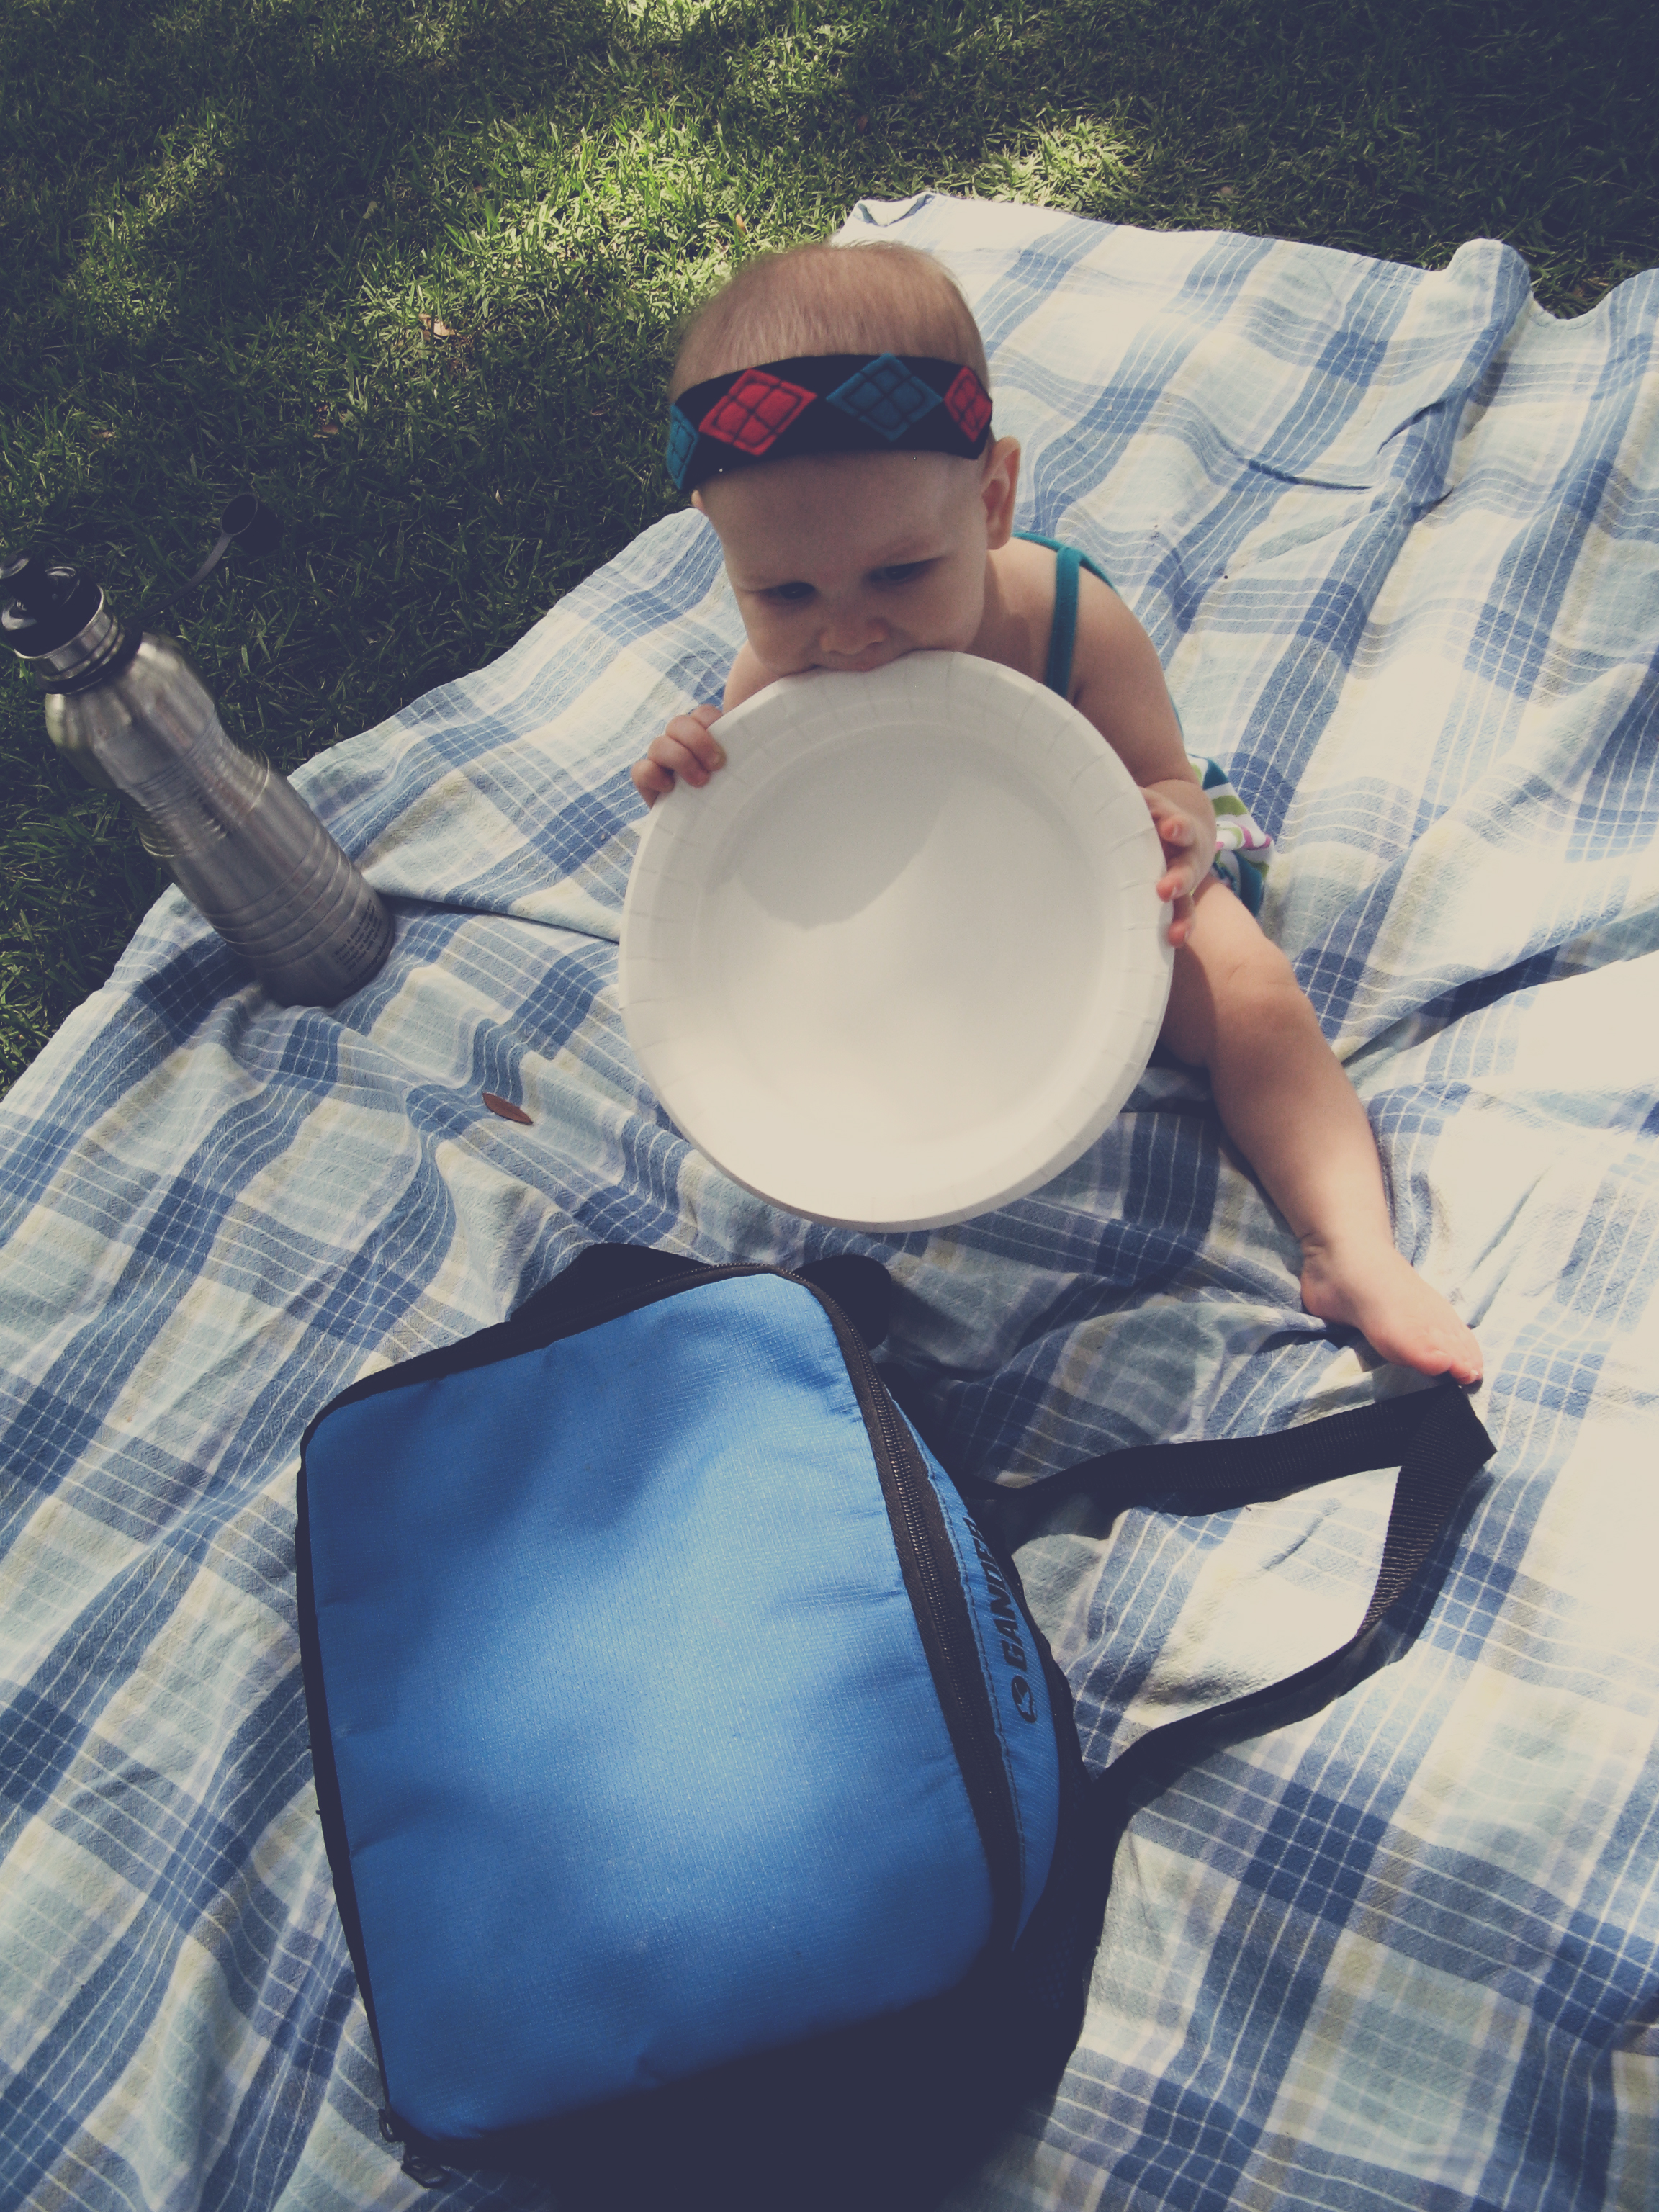 https://oaxacaborn.files.wordpress.com/2011/08/baby-chewing-on-paper-plate-waiting-for-picnic-baby-sitting-on-plaid-picnic-blanket.jpg